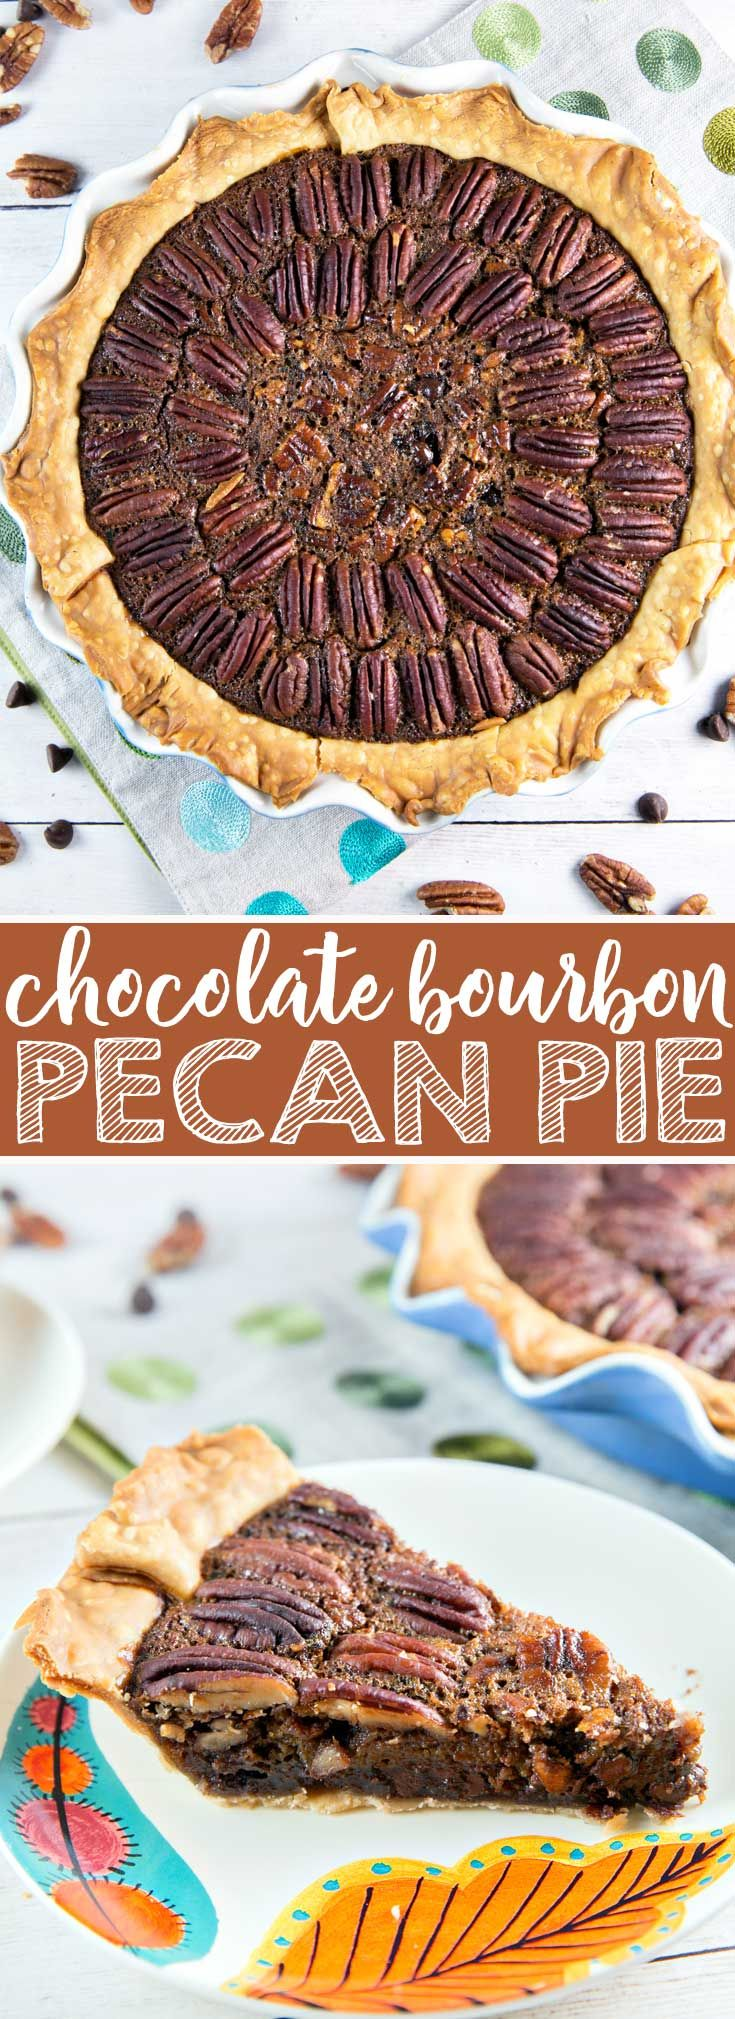 Chocolate Bourbon Pecan Pie: rich and decadent, this is an easy, crowd pleasing dessert, perfect for your holiday table... or any time of year! {Bunsen Burner Bakery} #pie #pecanpie #chocolate #bourbon #Thanksgiving via @bnsnbrnrbakery